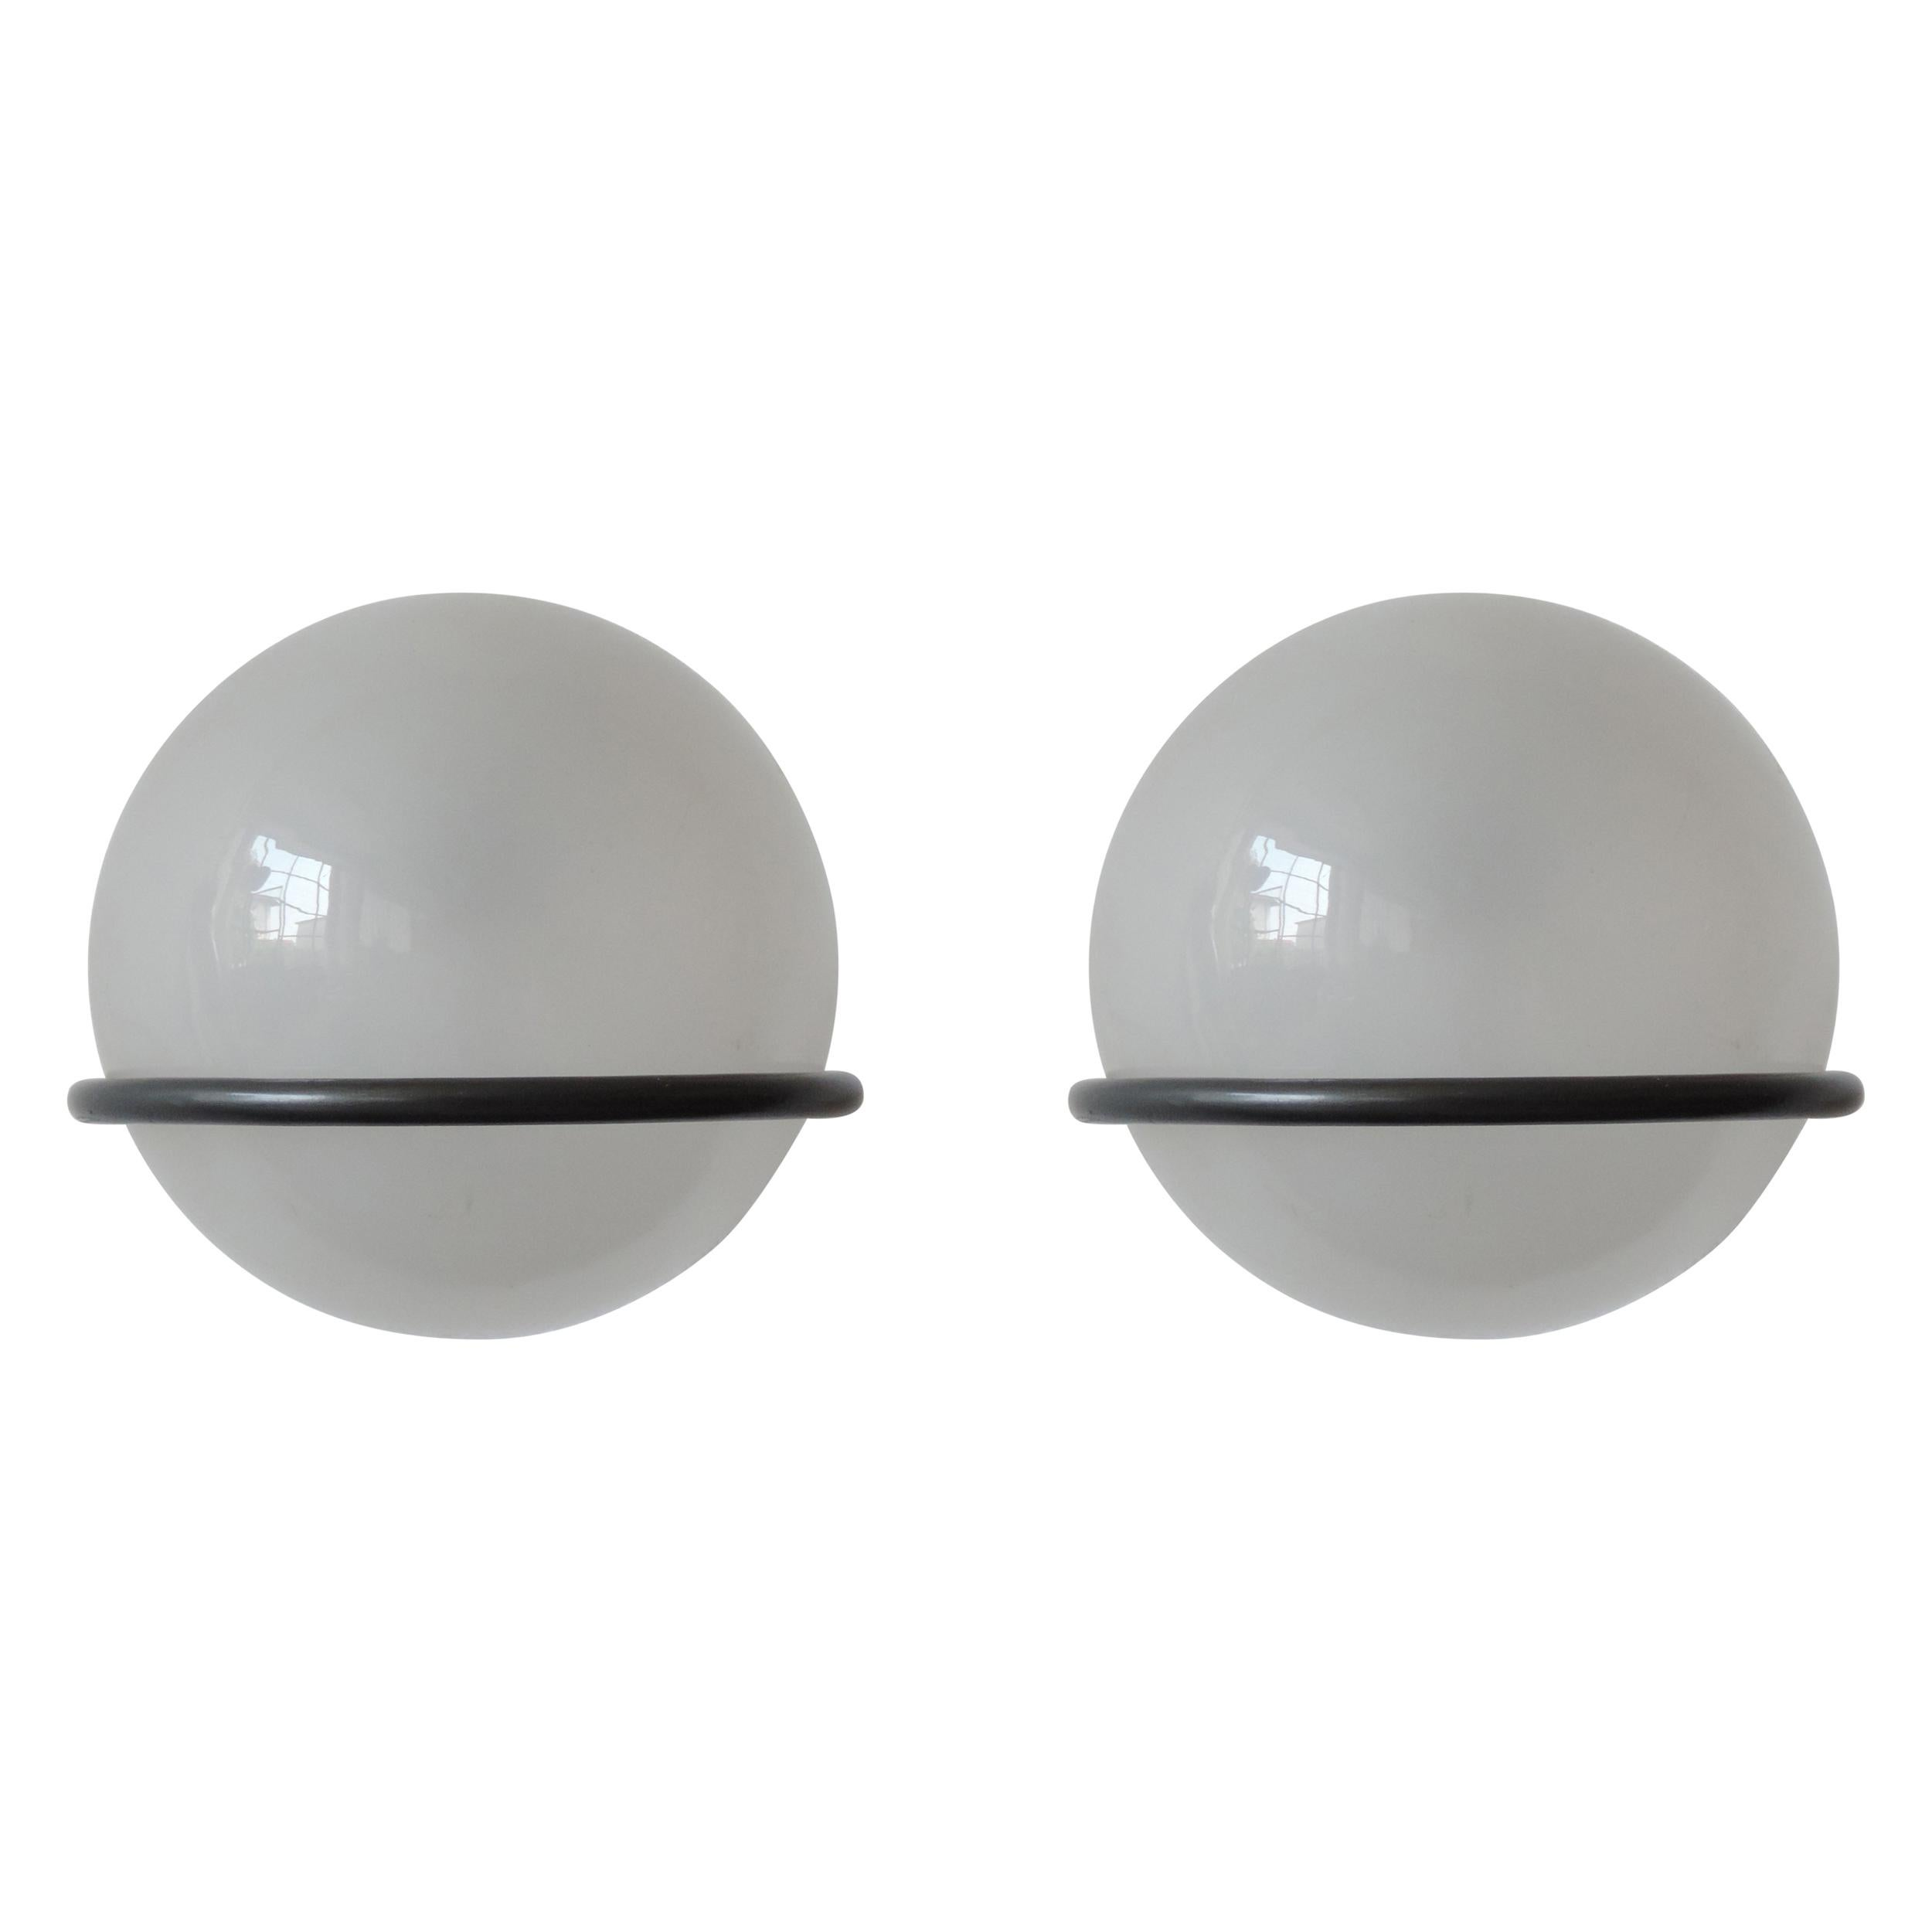 Pair of Gino Sarfatti 239/1 Wall Lamps for Arteluce, Italy, 1960s